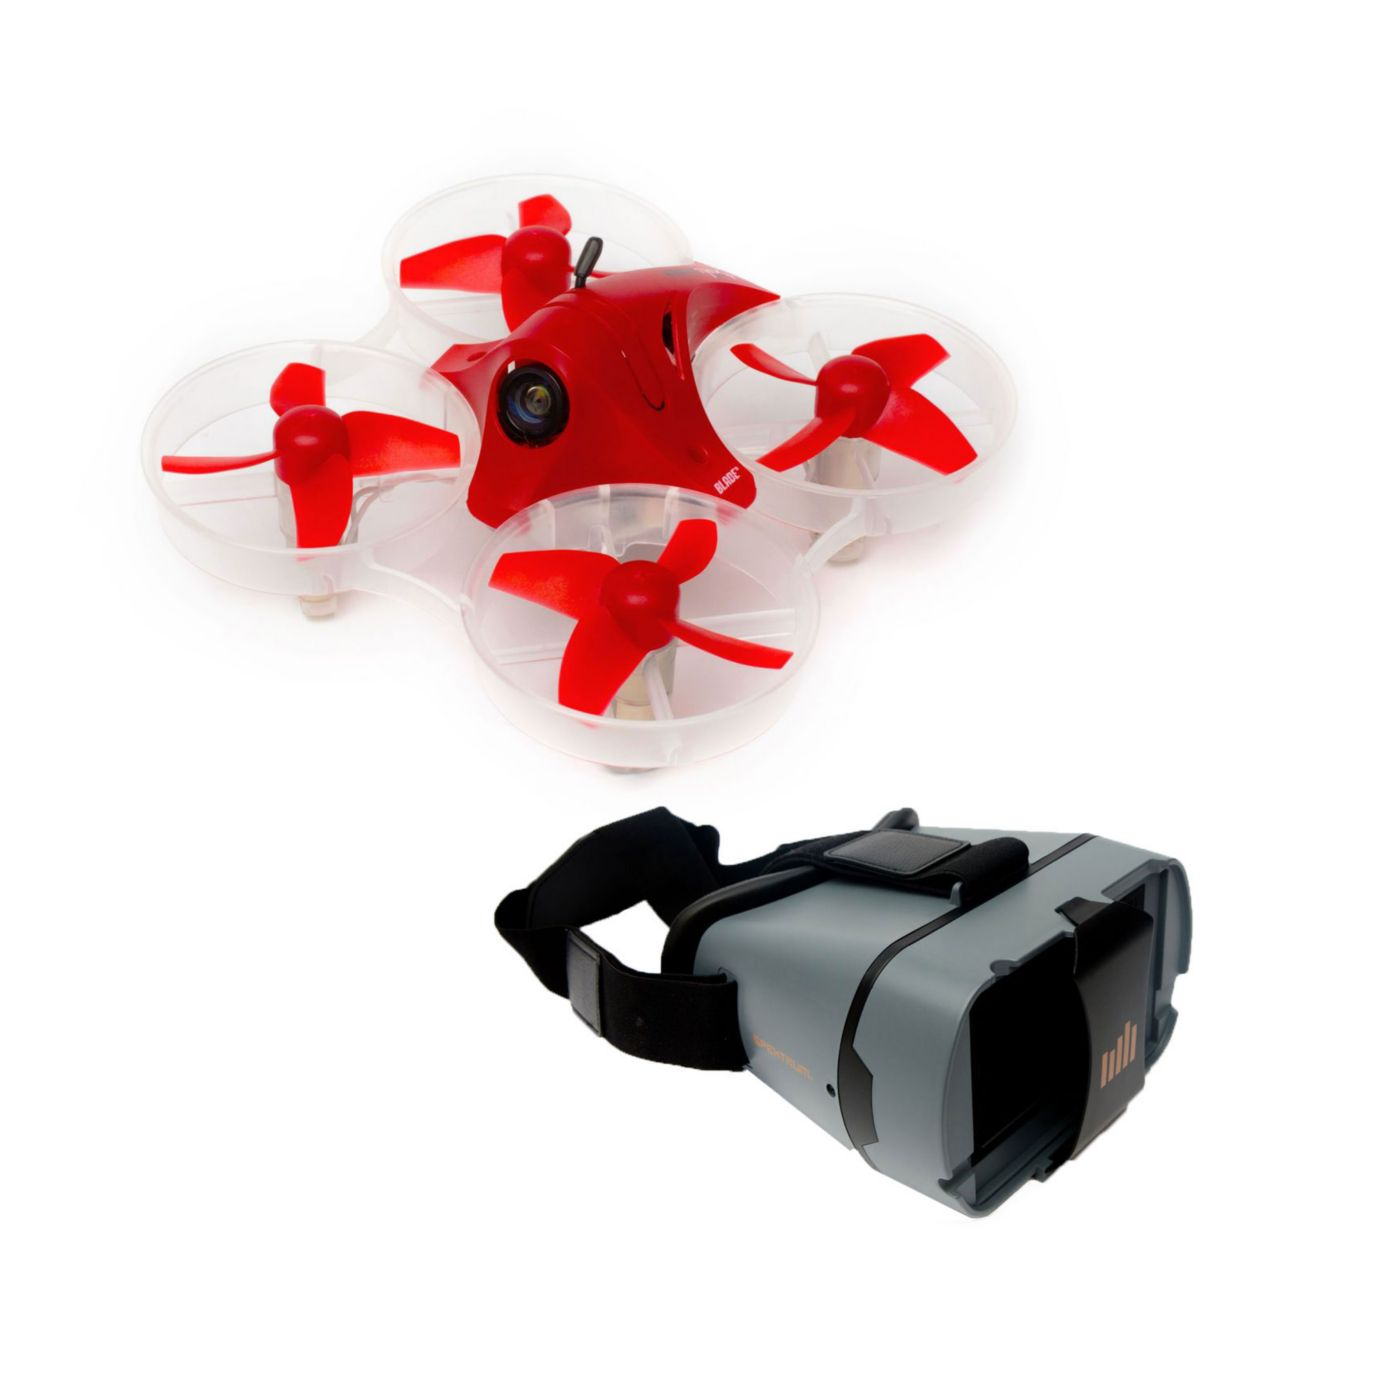 Inductrix FPV + RTF with Headset Conversion